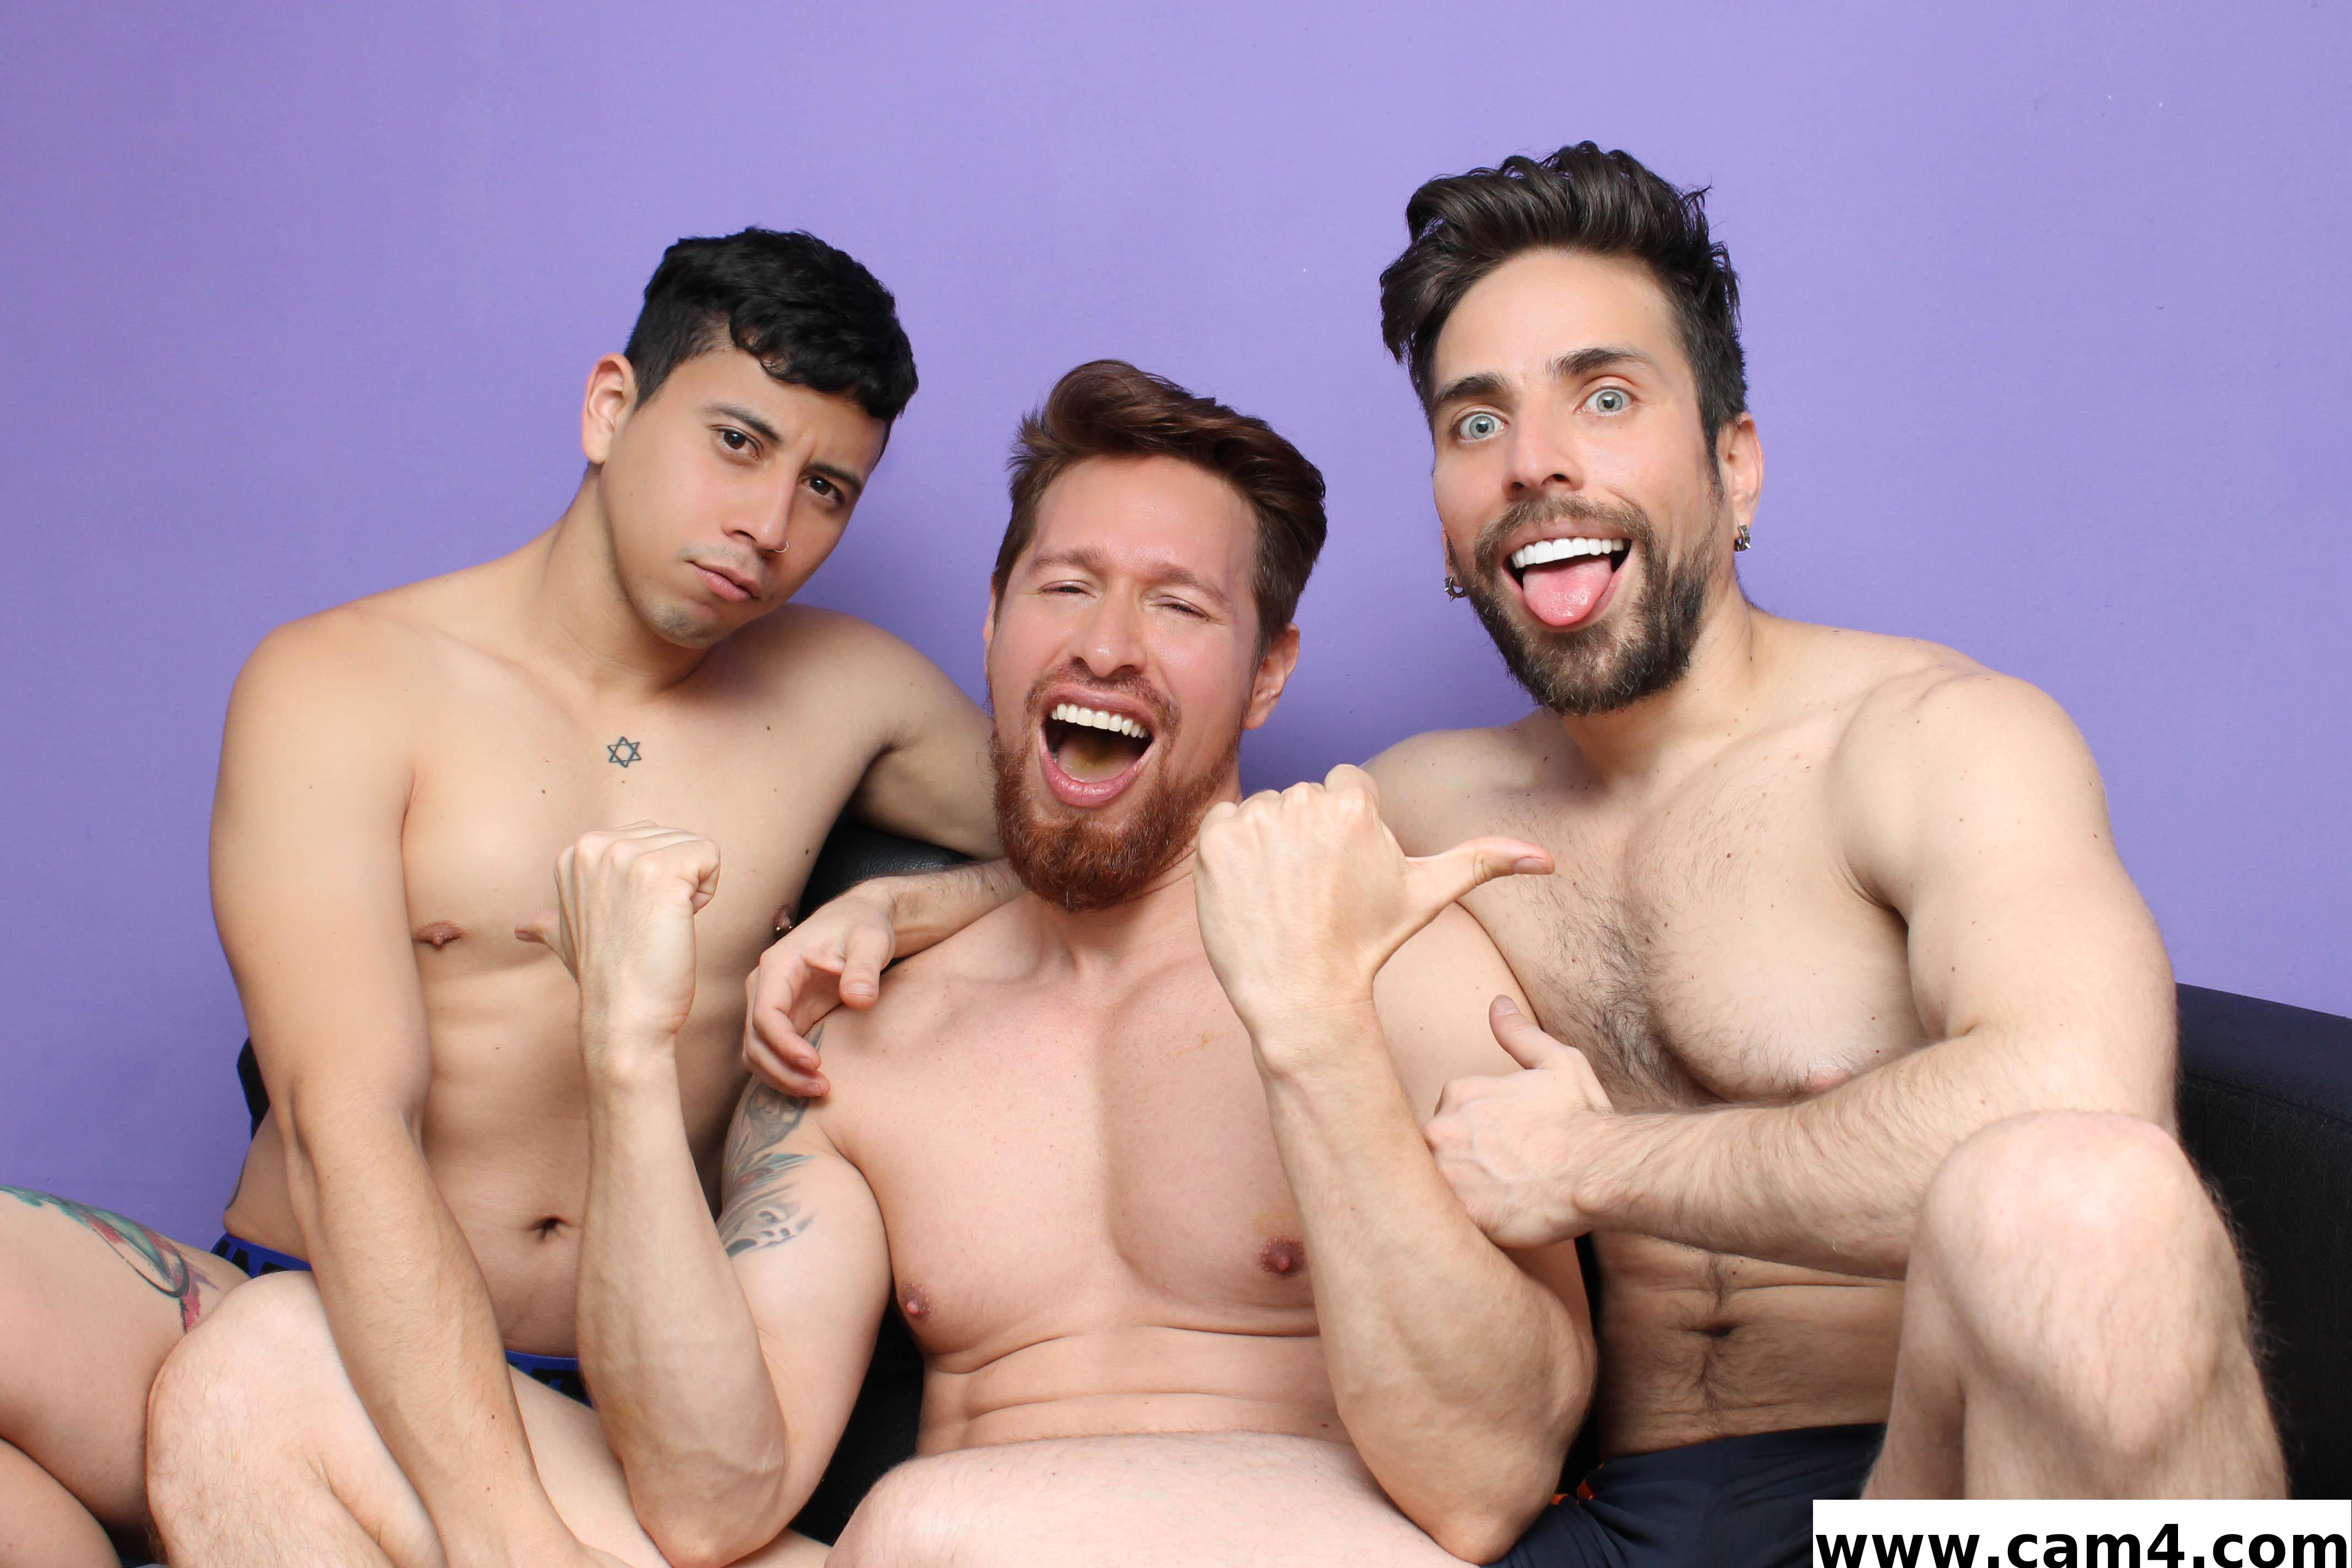 The sex free cam4 ultimate agree